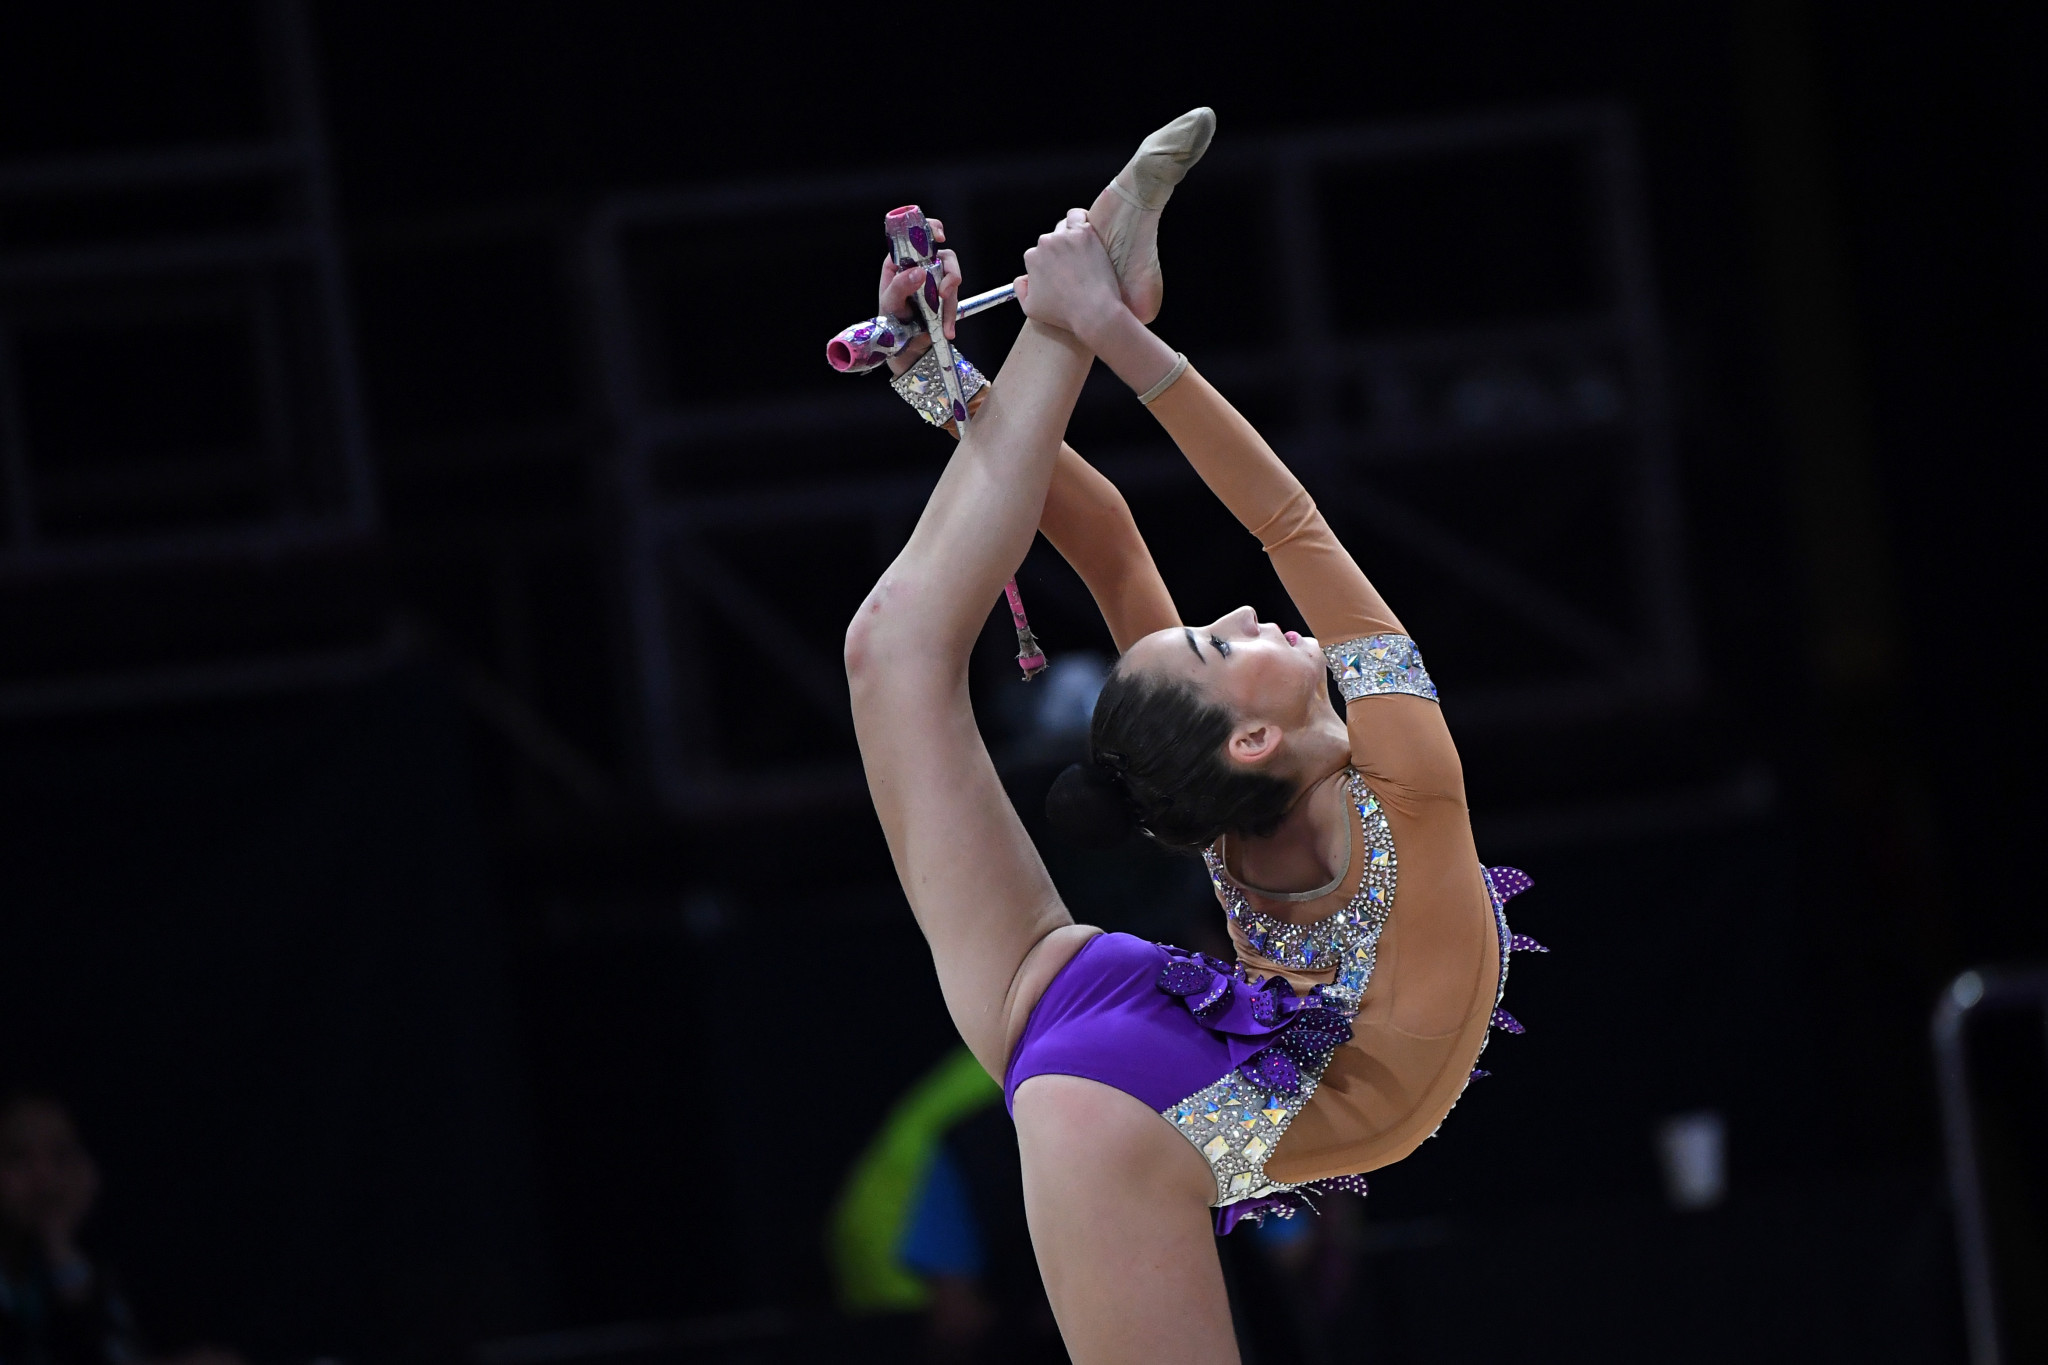 Alina Adilkhanova is the new Asian clubs champion ©Getty Images